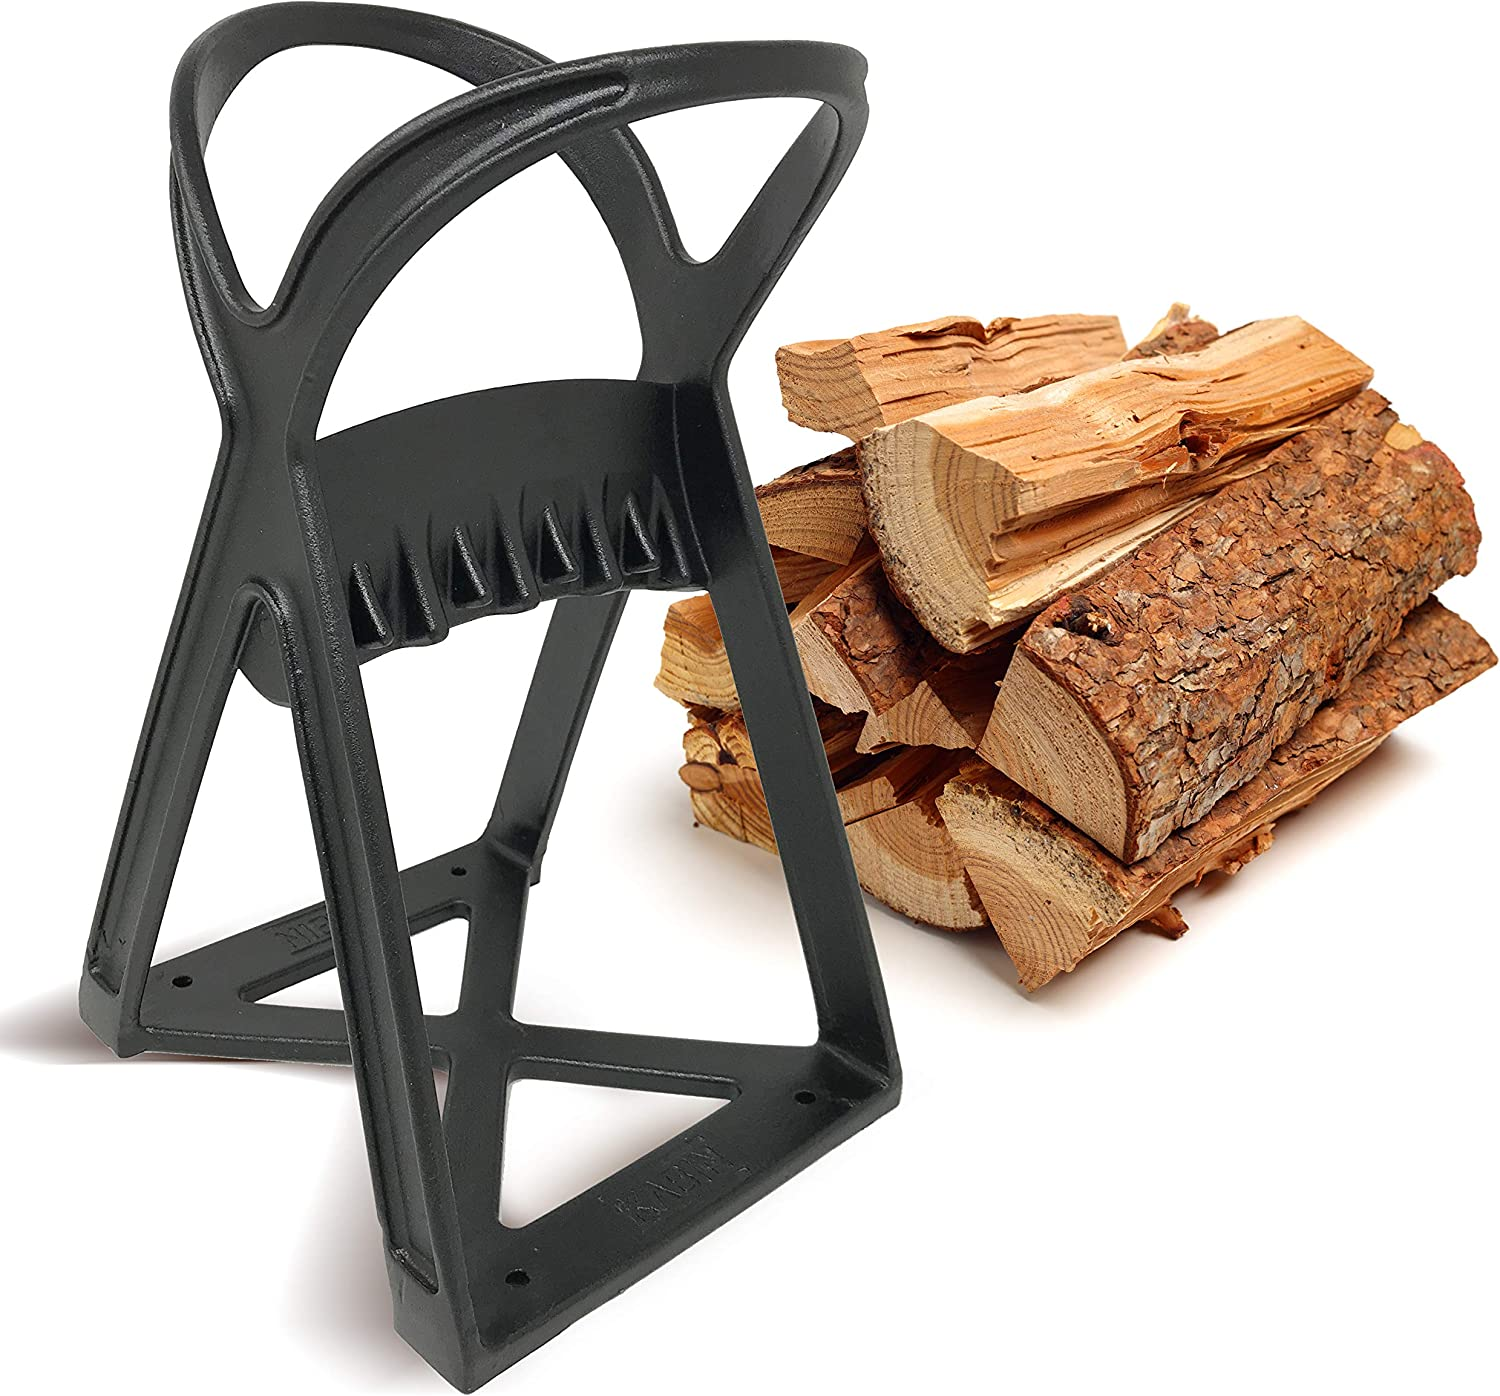 KABIN Kindle Quick Log Splitter - Manual Splitting Tool - Steel Wedge Point Splits Firewood Like A Boss Safely & Easily